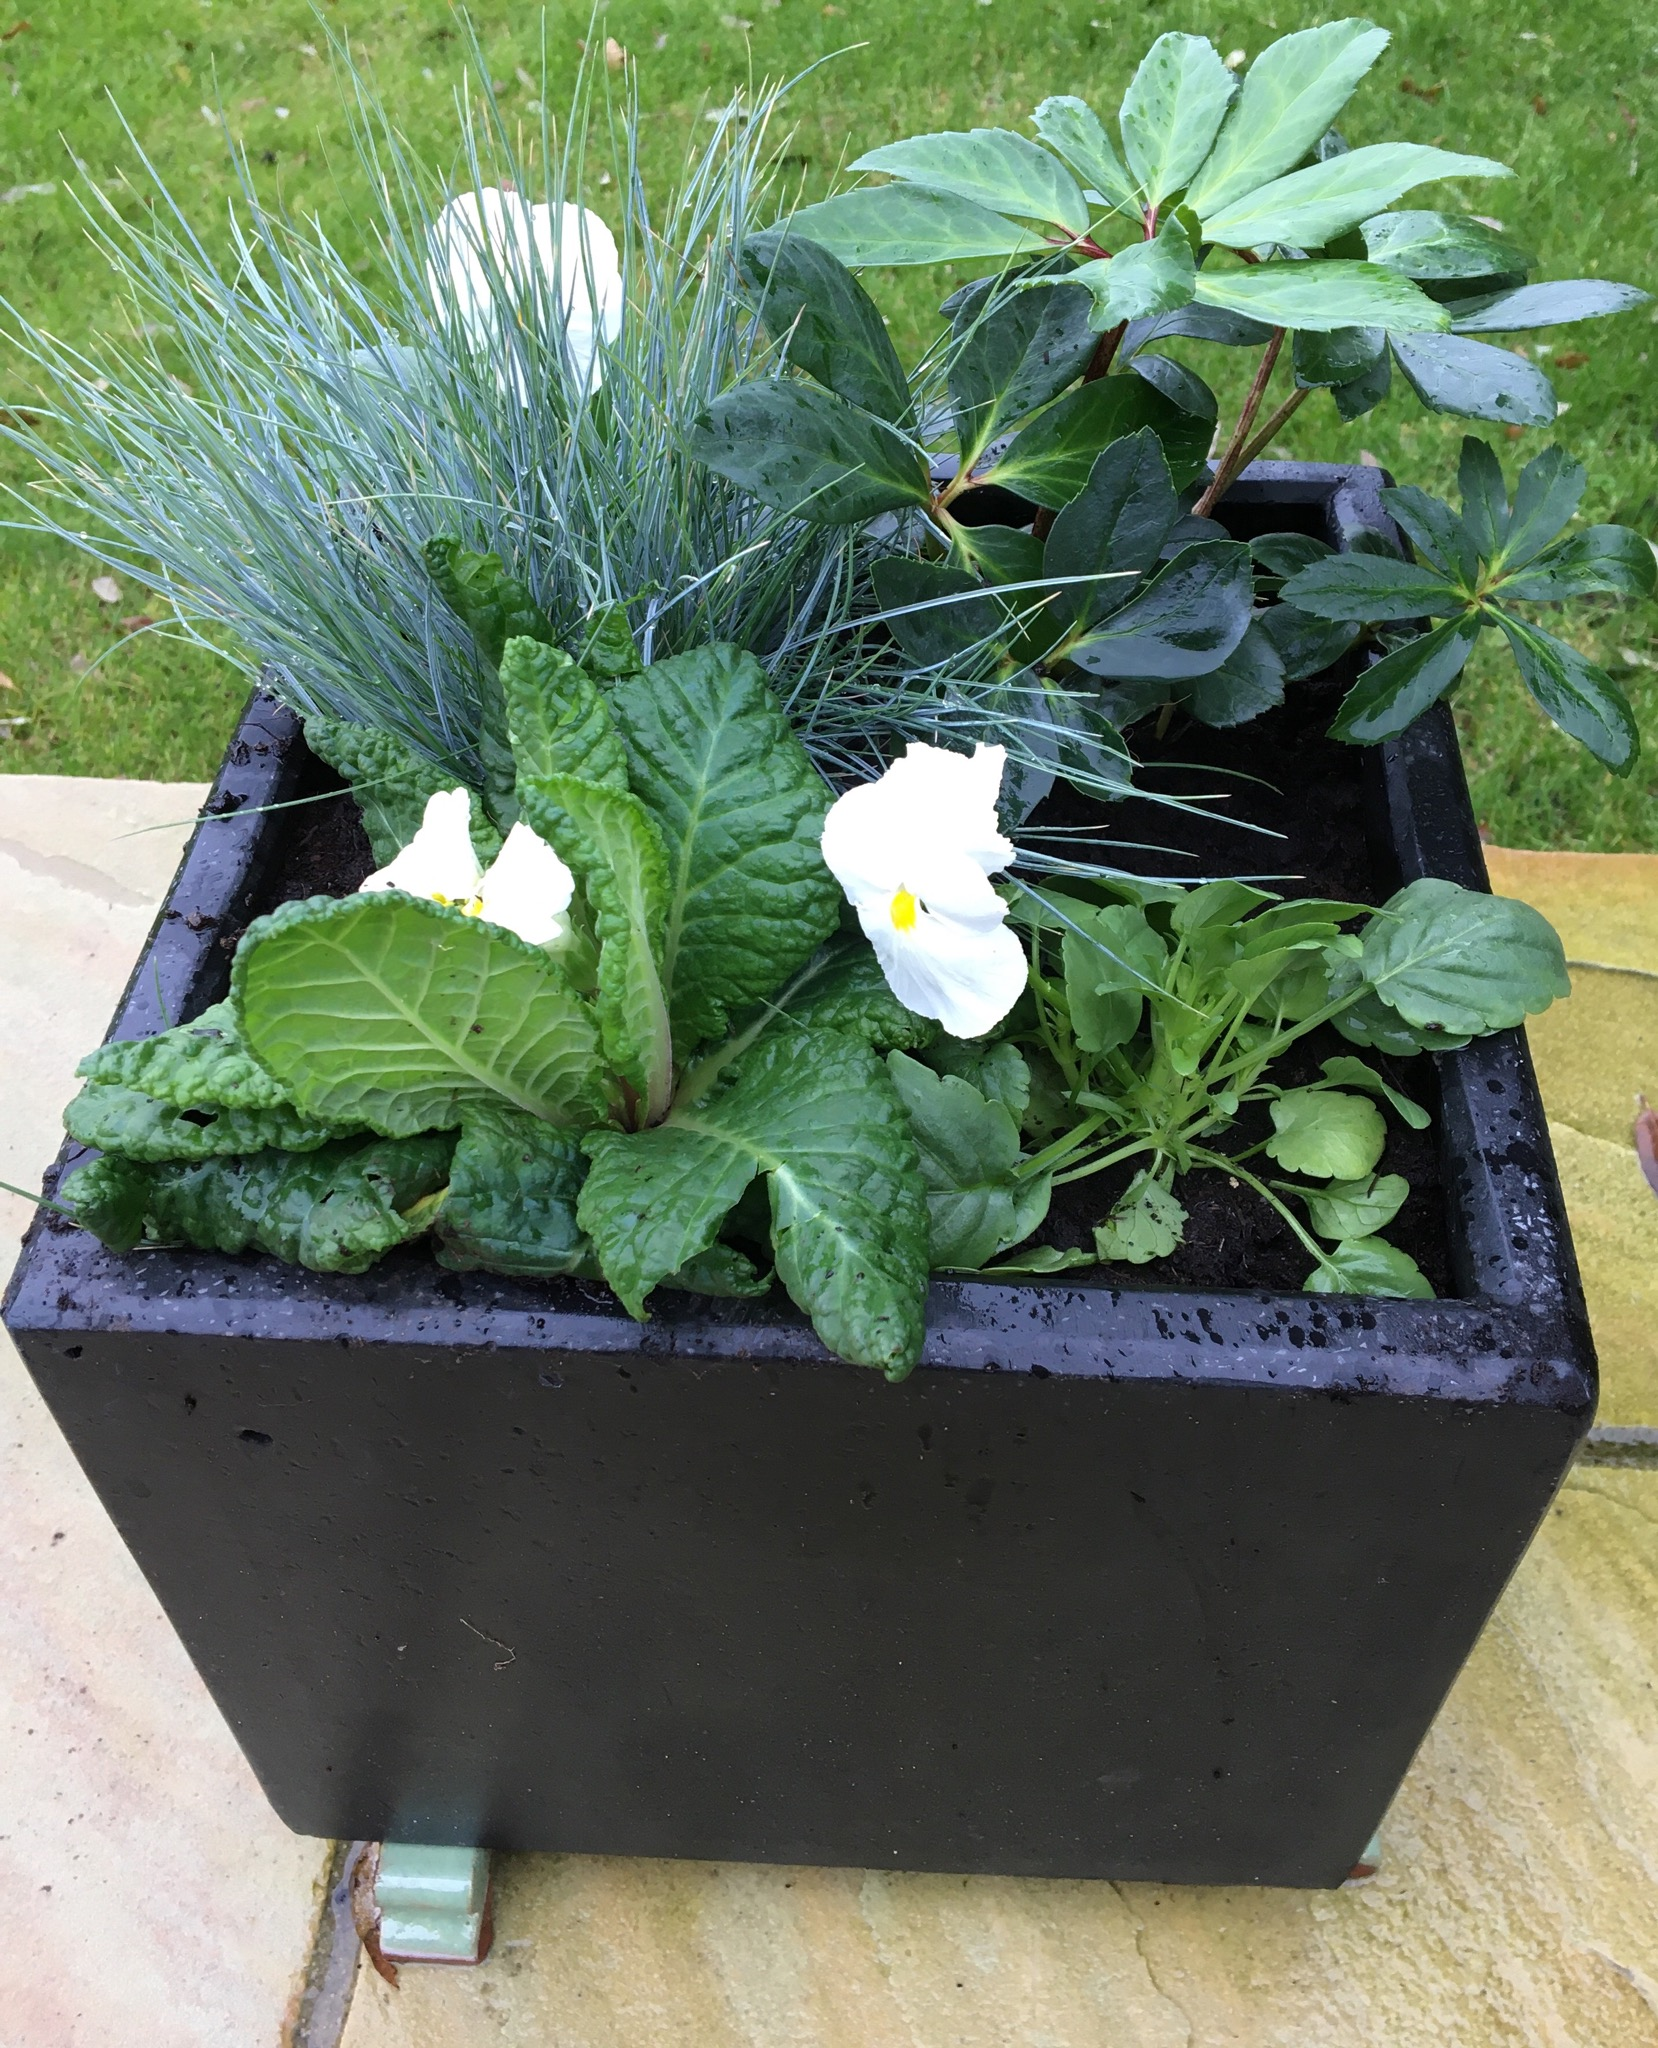 White flowers and green foliage plants in a square black patio planter